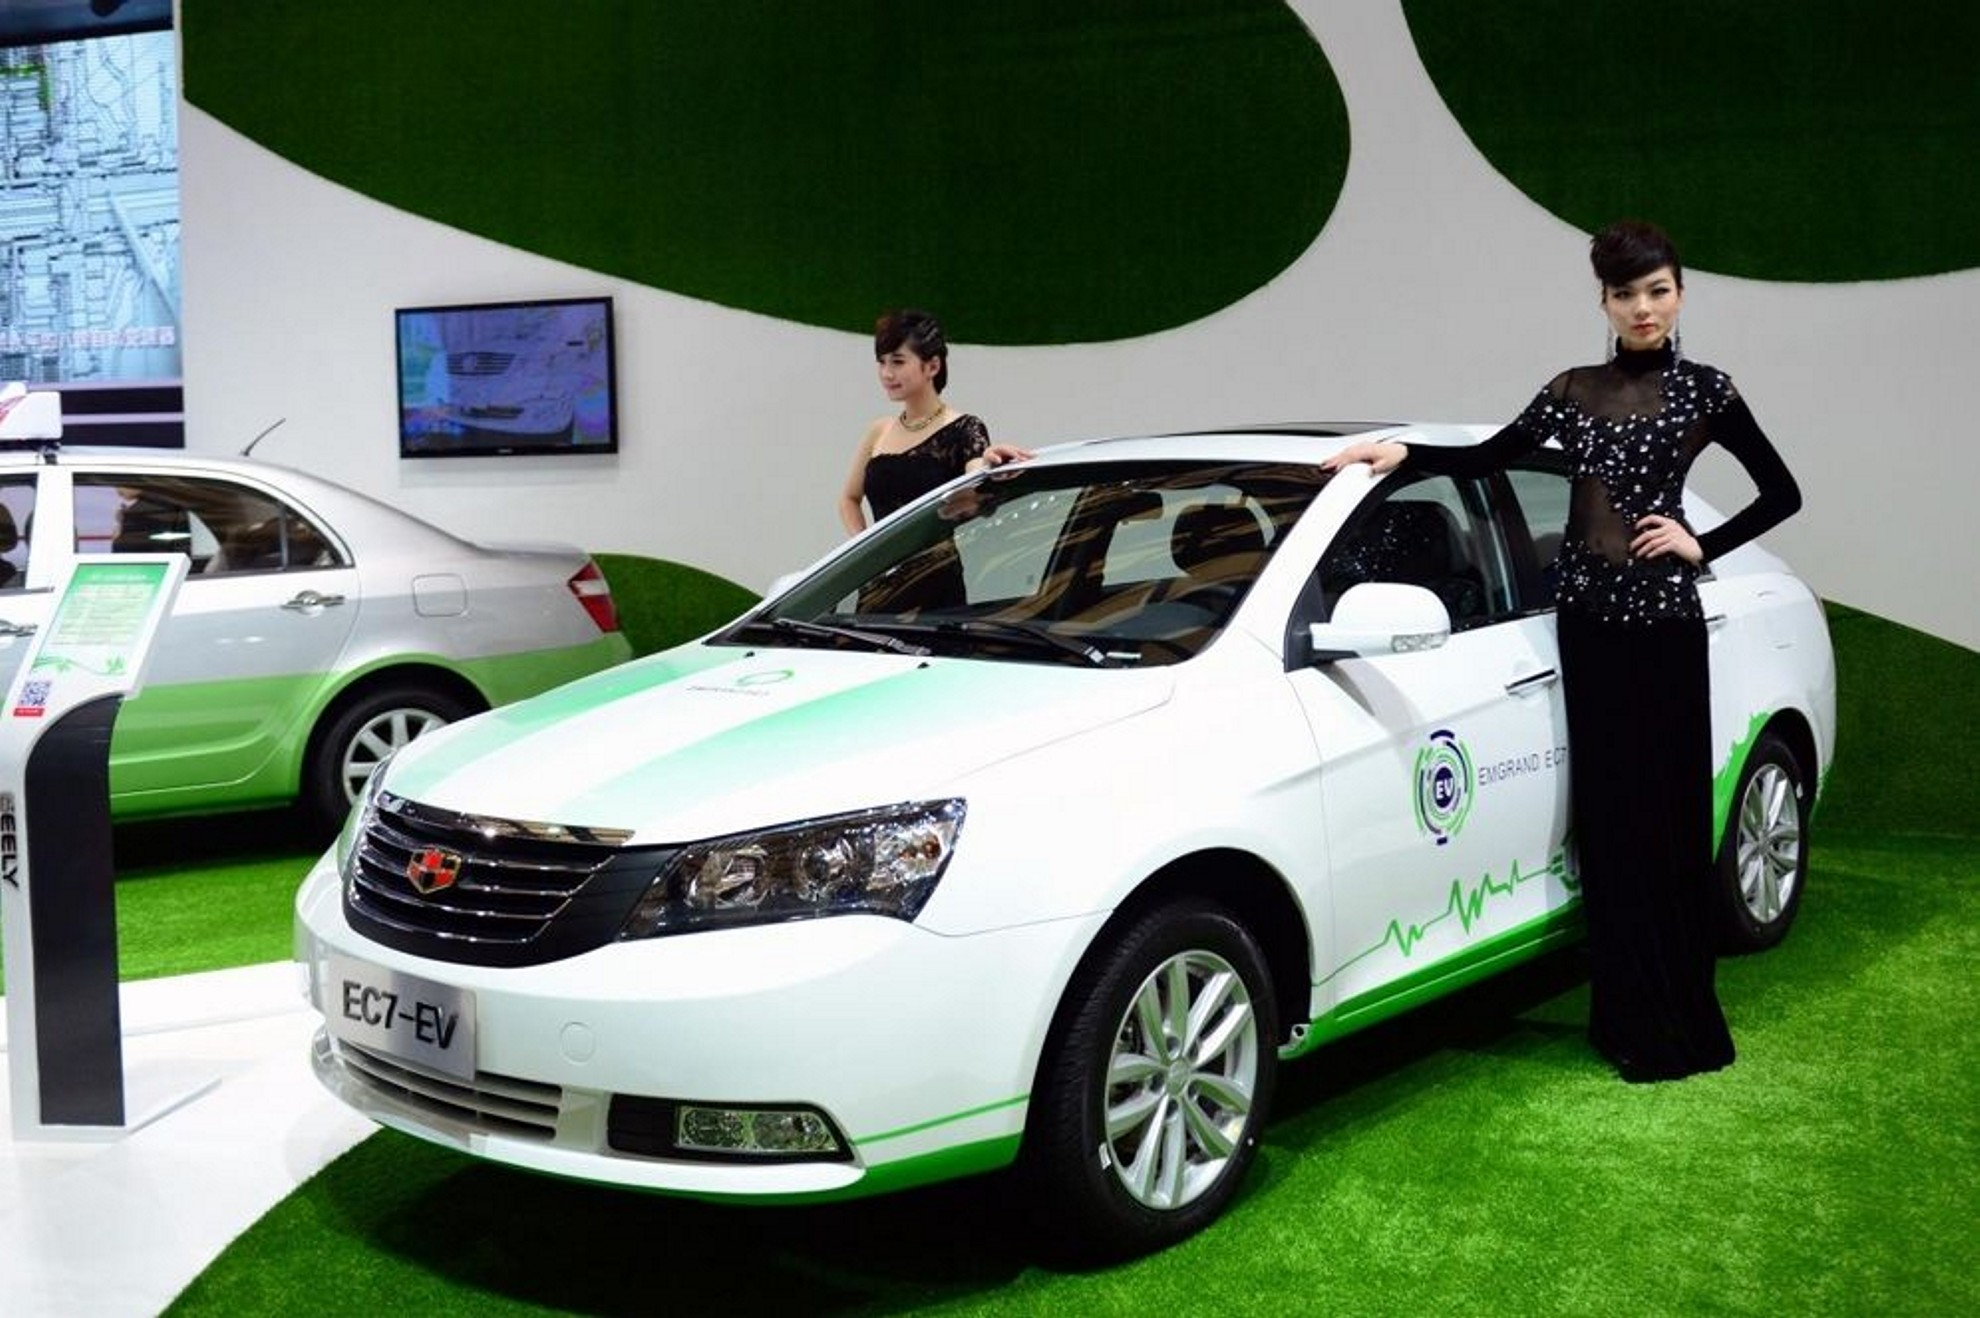 Geely_electric_Vehicles